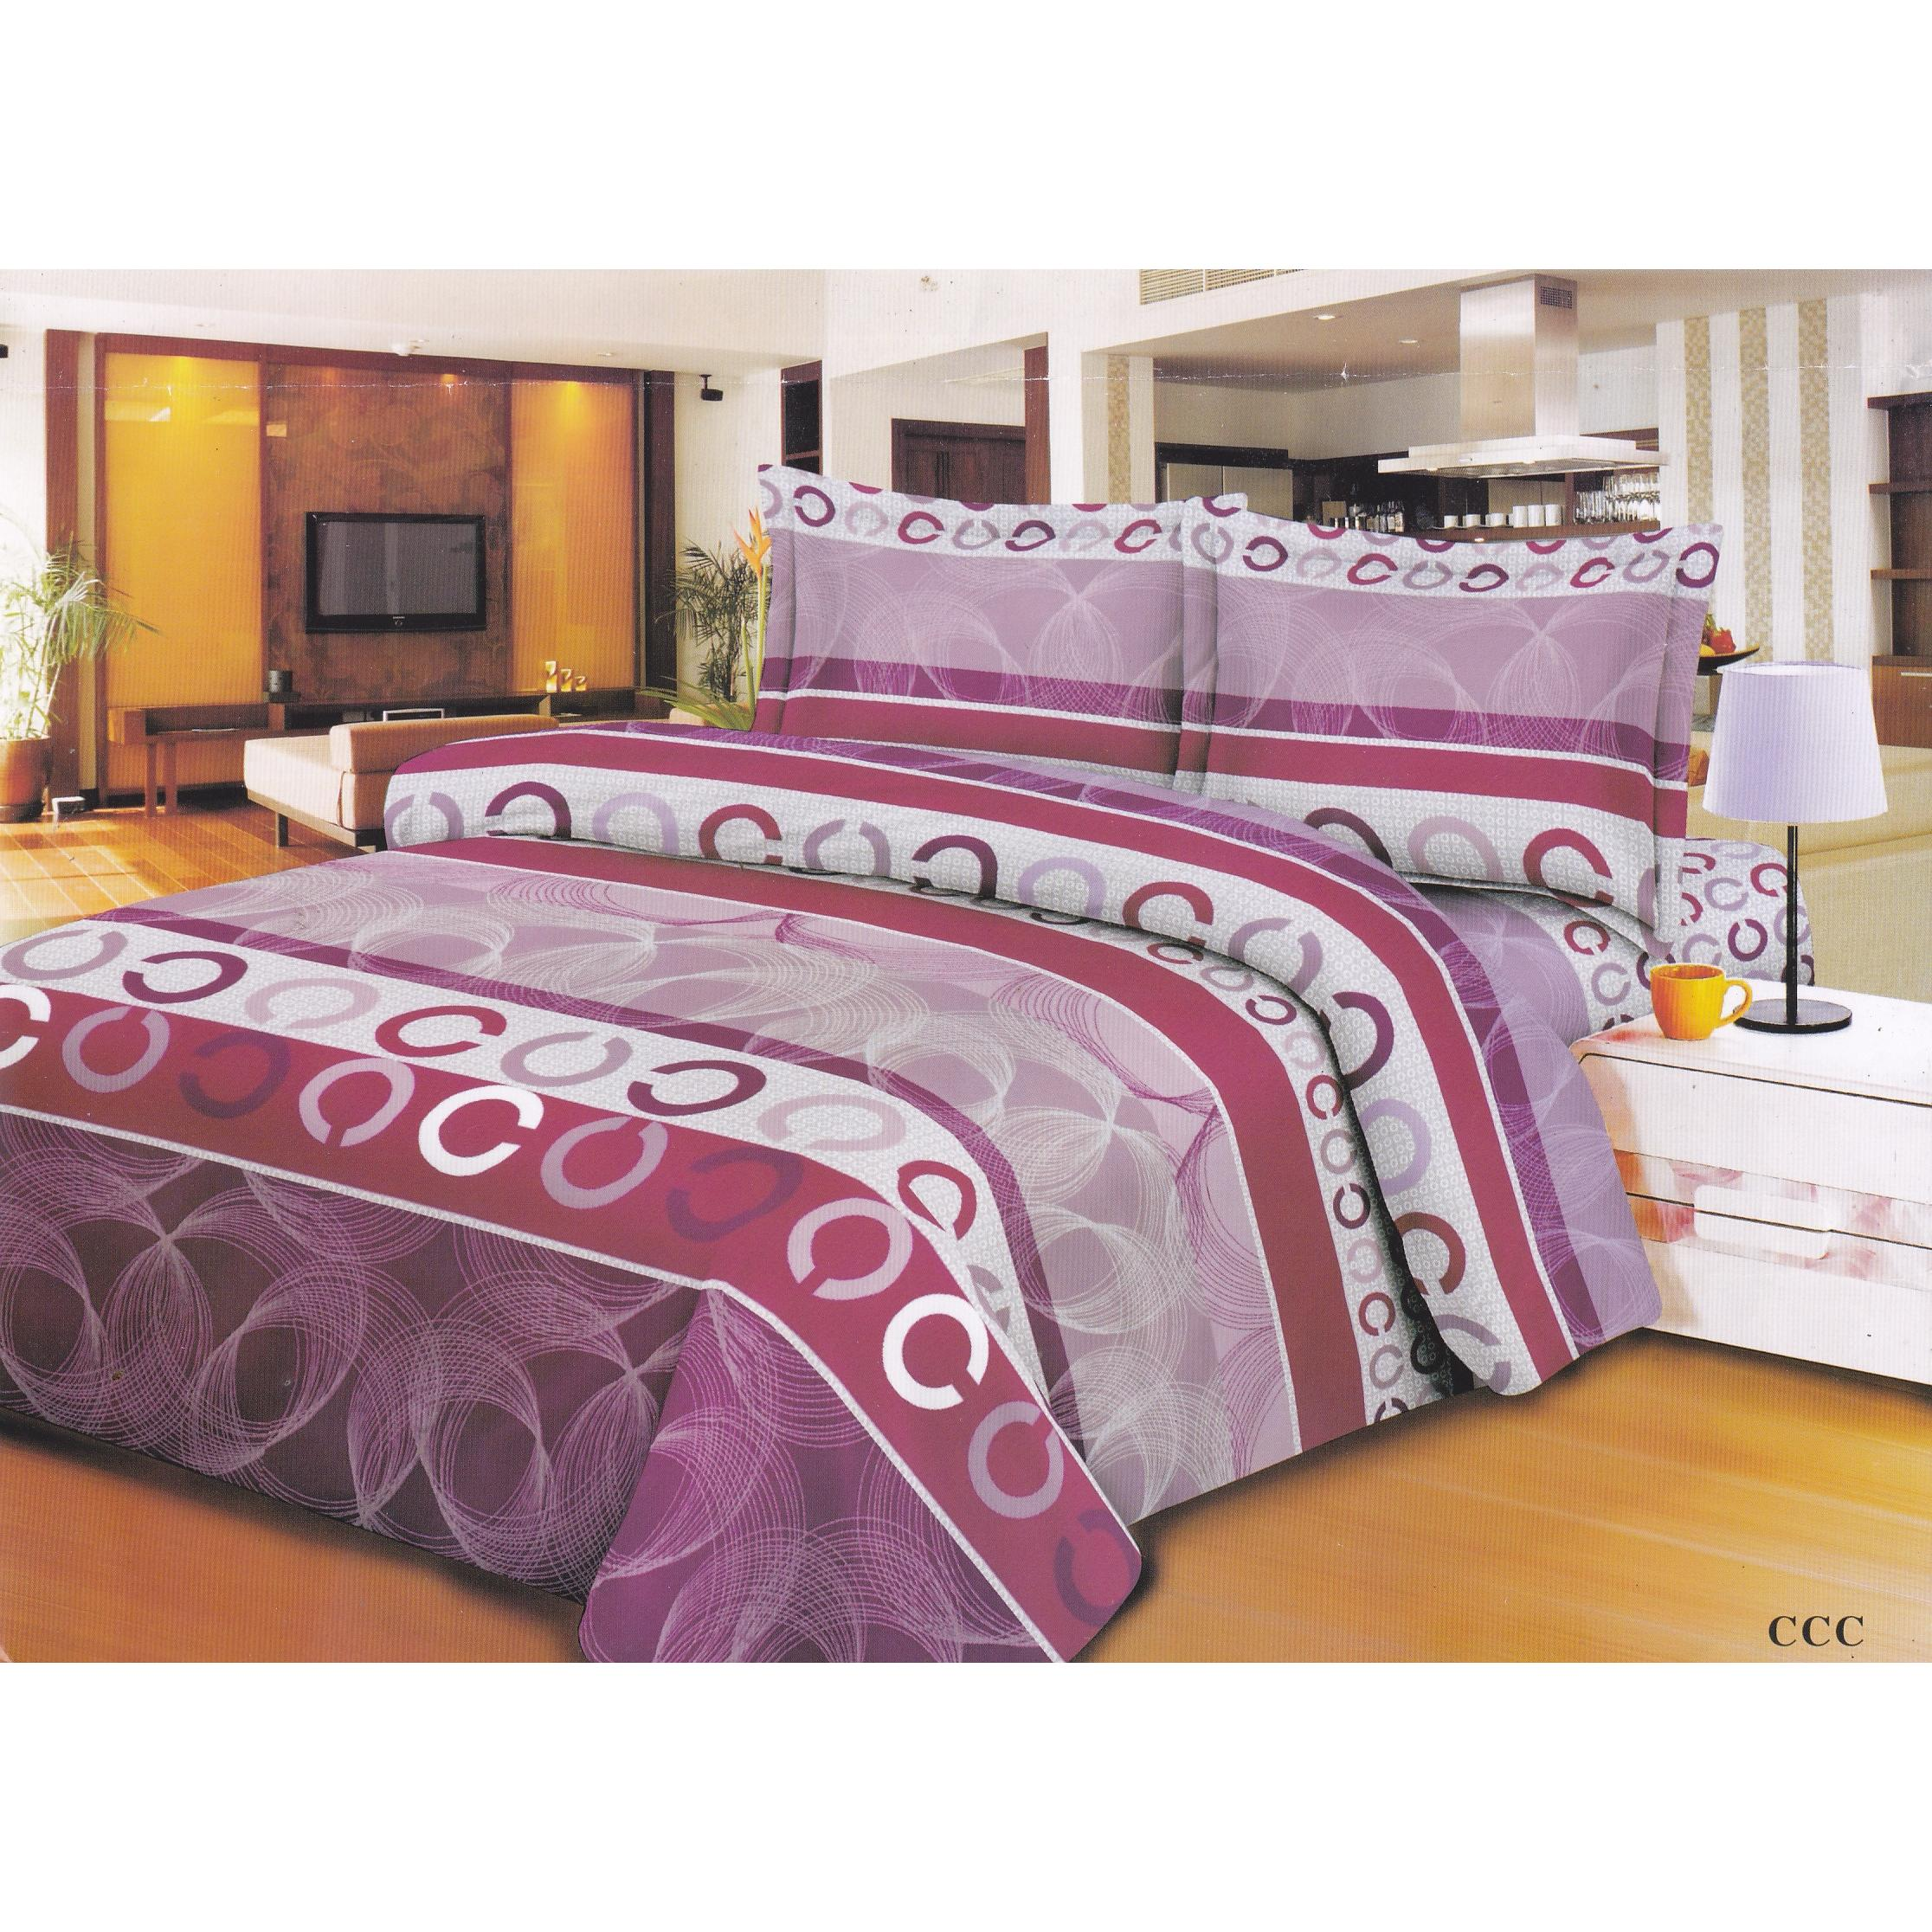 Sprei Katun Import Murah Uk 120x200 Daftar Harga Terlengkap  Single 339 401 Bedcover Set 180x200